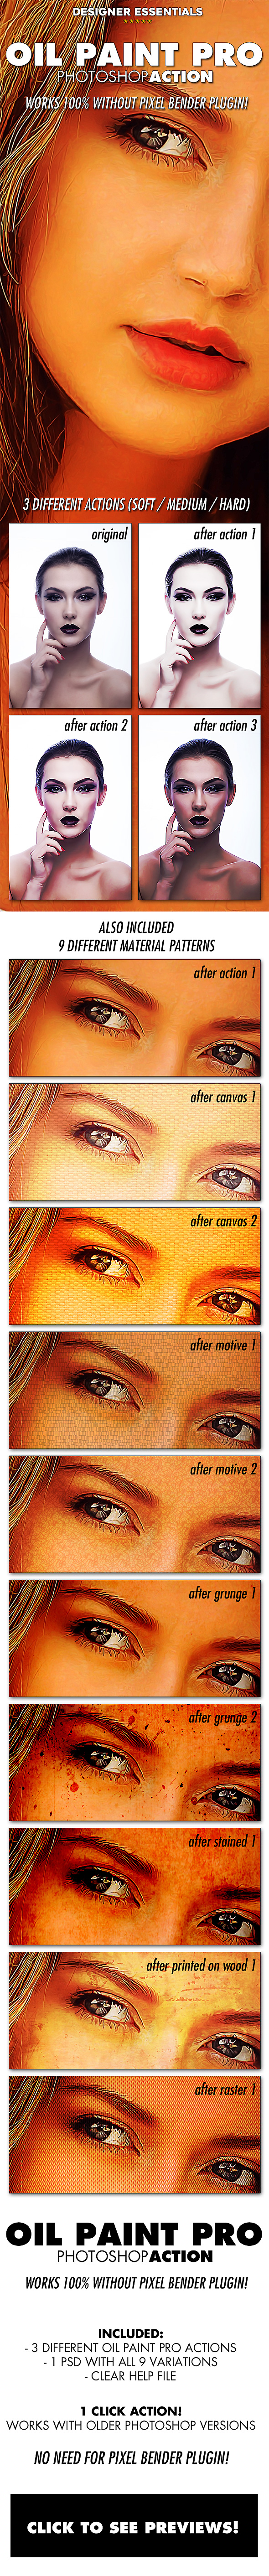 Oil Paint Pro (no pixelbender needed!) - Photo Effects Actions